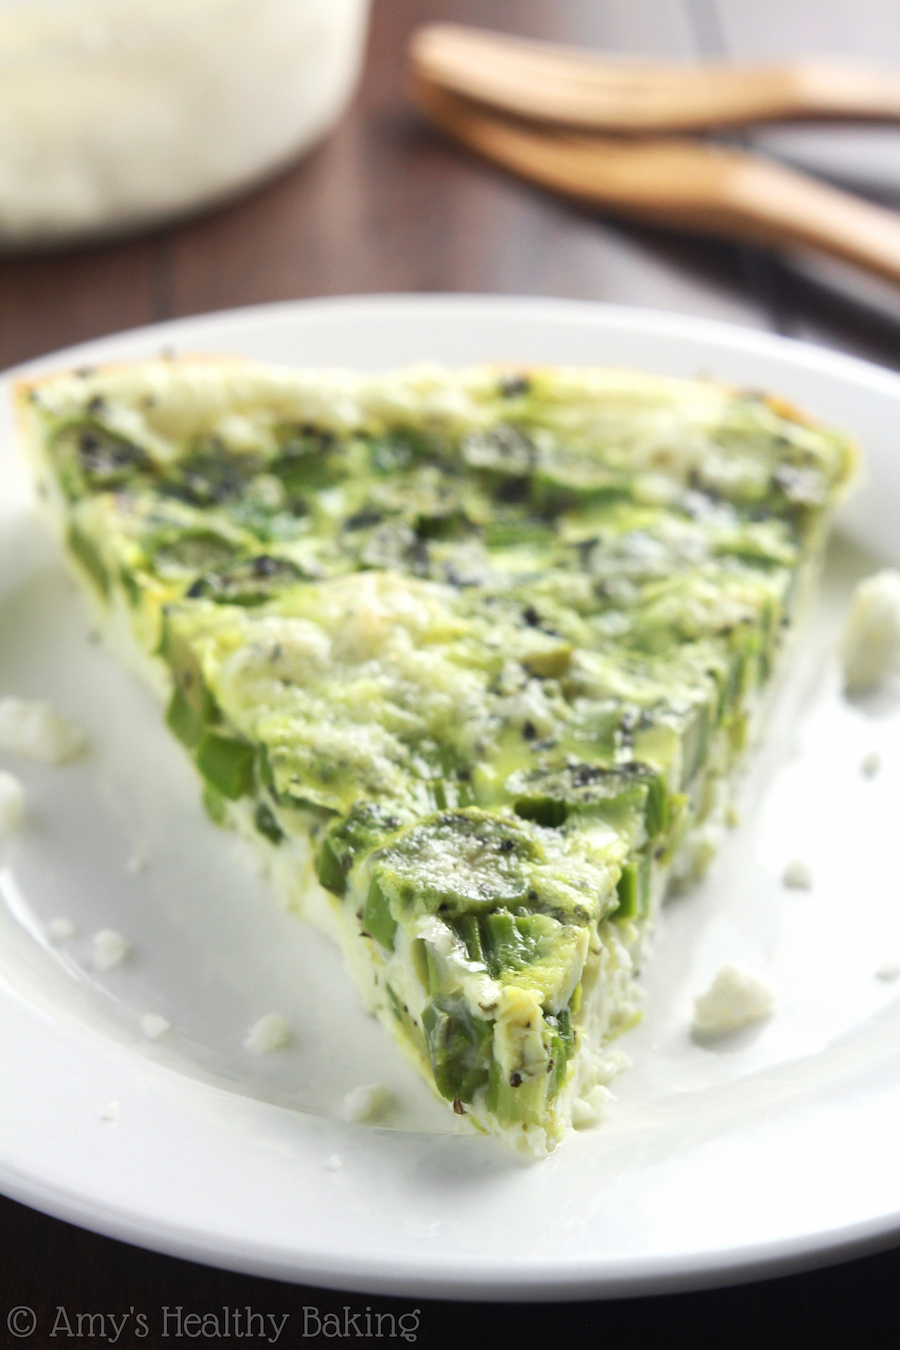 Skinny Asparagus & Feta Quiche -- just 4 ingredients & packed with 13g of protein! Make it over the weekend & reheat for easy breakfasts during the week!